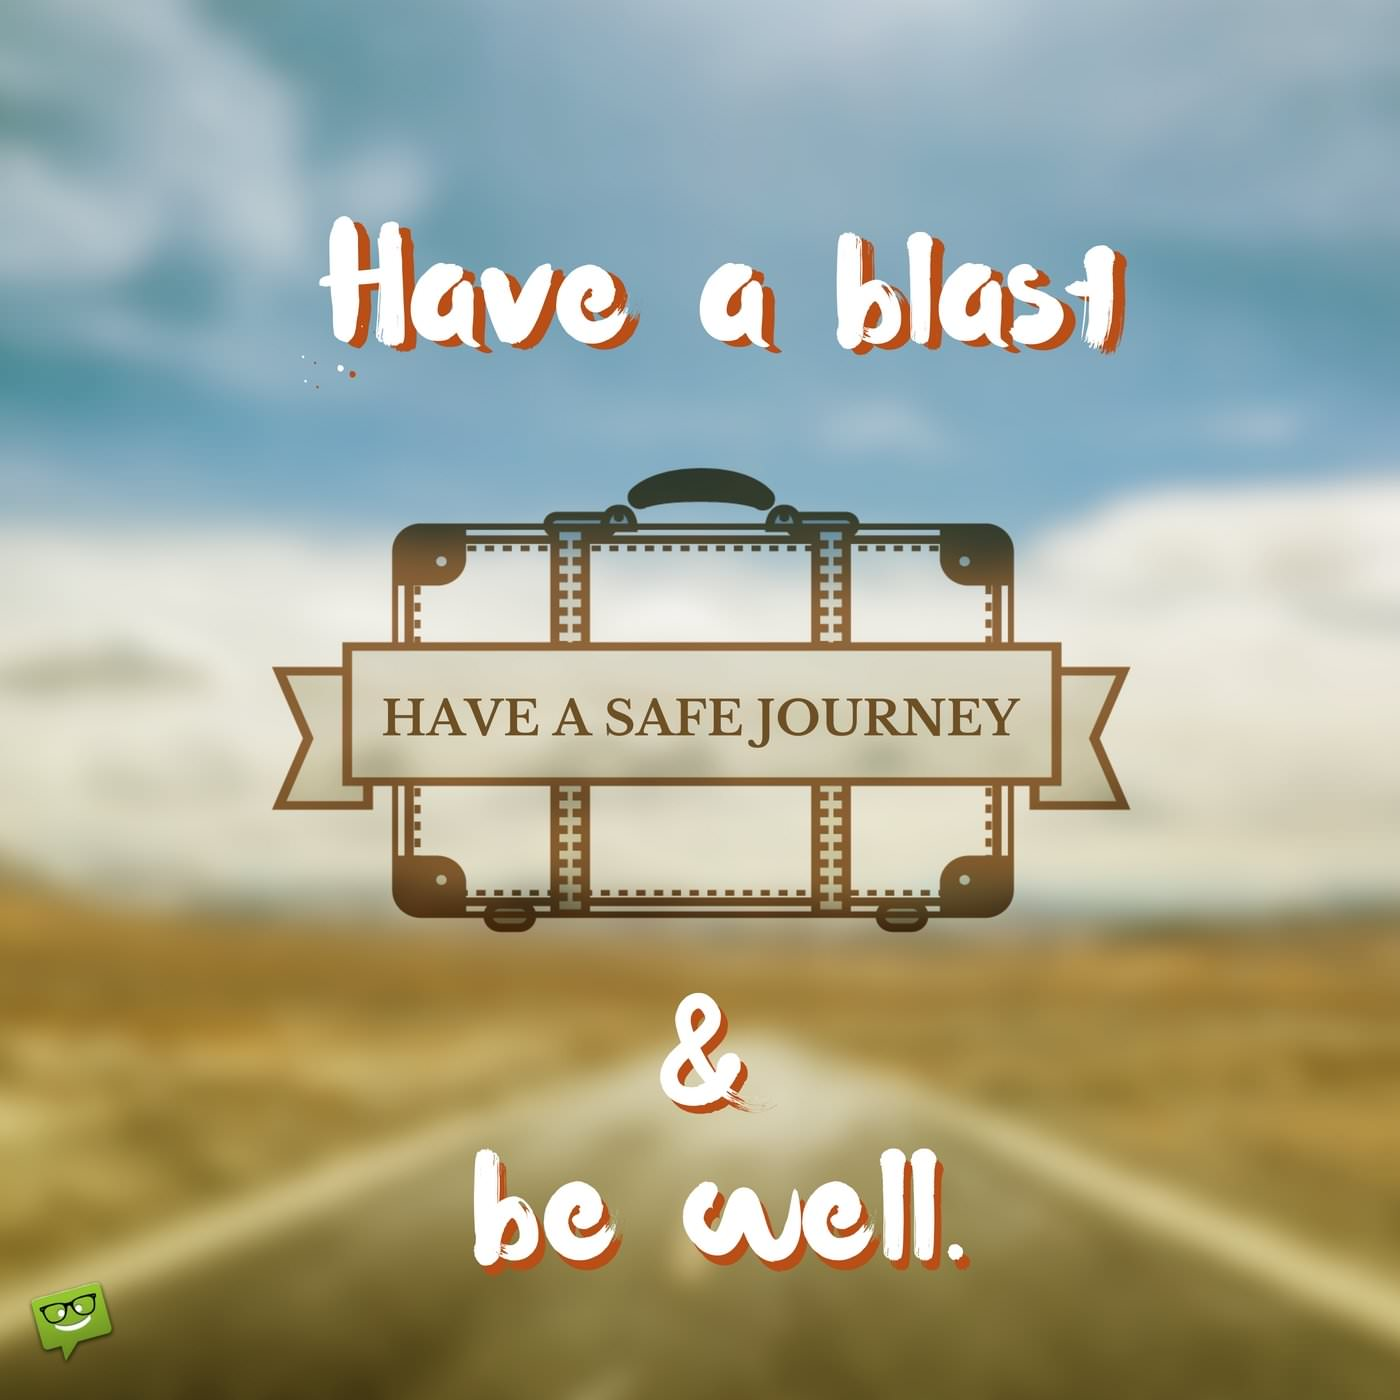 50 safe journey wishes to inspire the best flights and road trips have a safe journey have a blast and be well m4hsunfo